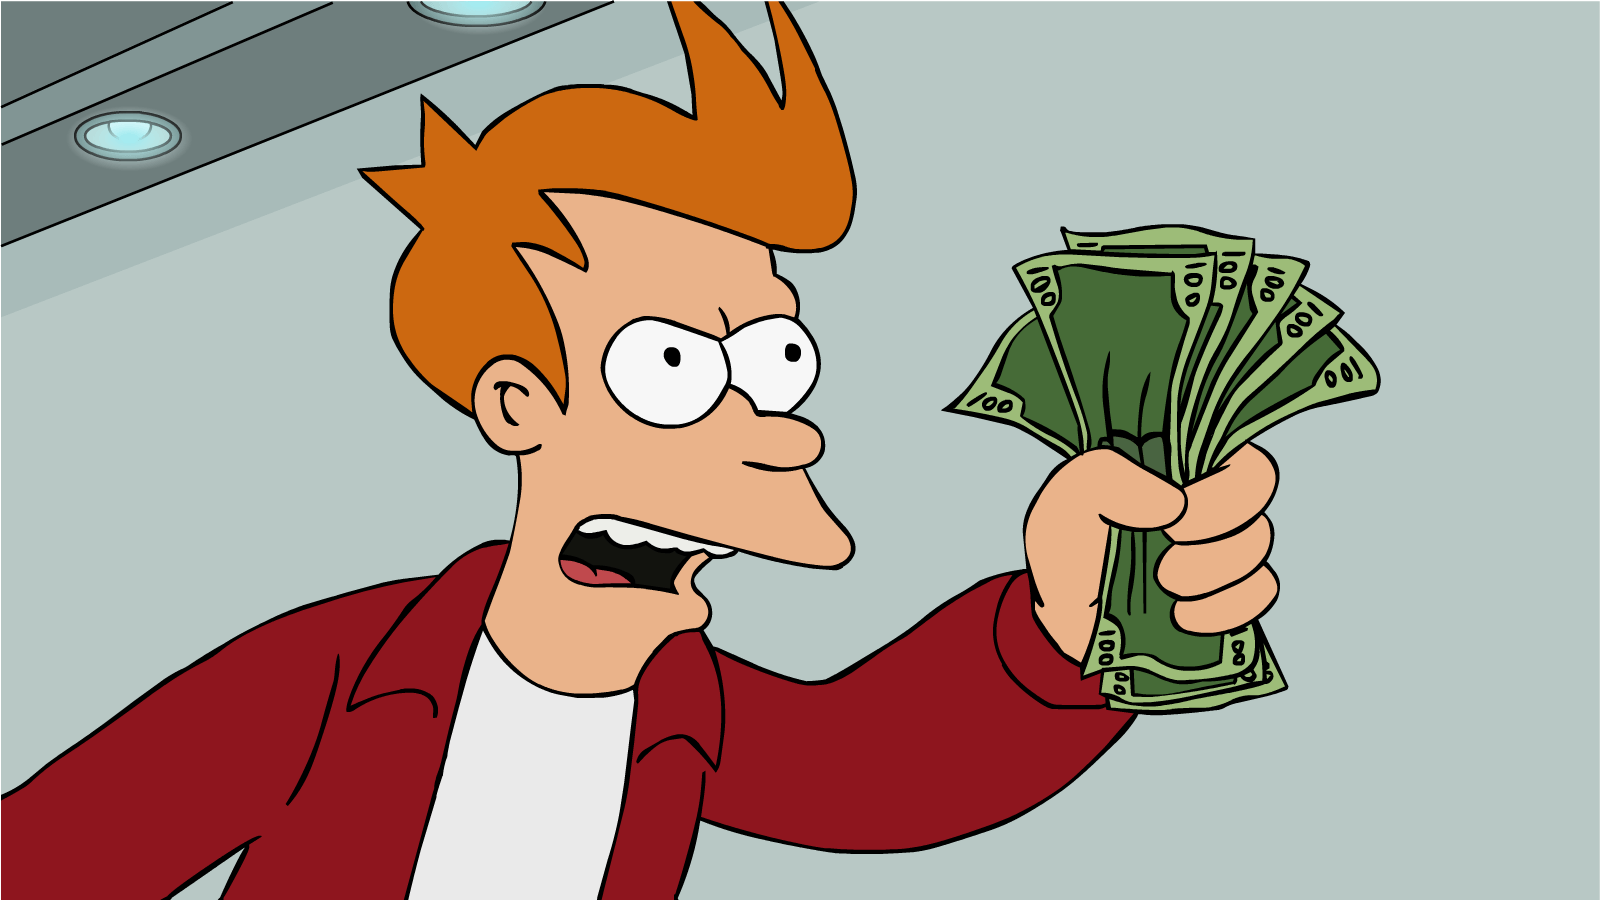 Futurama's Fry demands that someone take his money